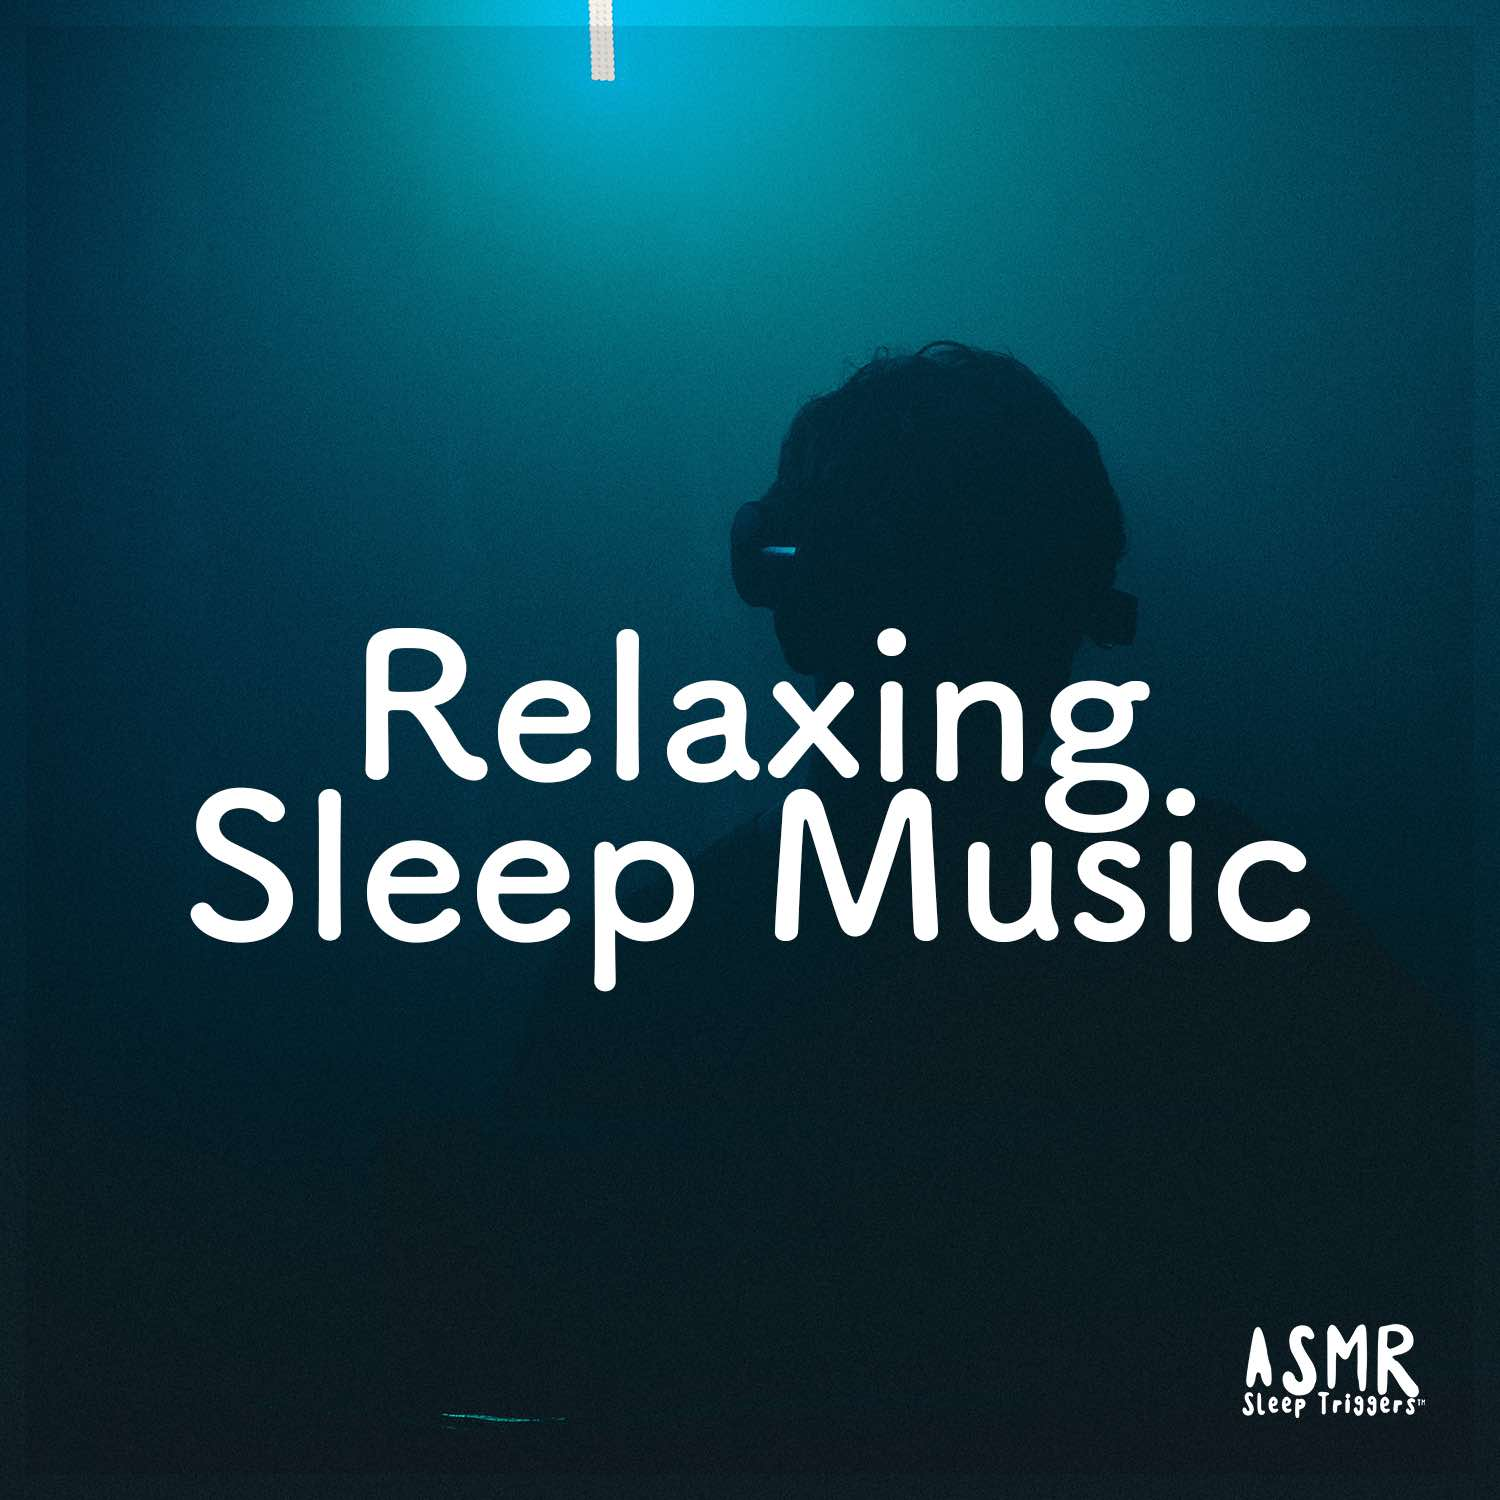 ASMR Sleep Triggers_Relaxing Sleep Music_SMALL.jpg